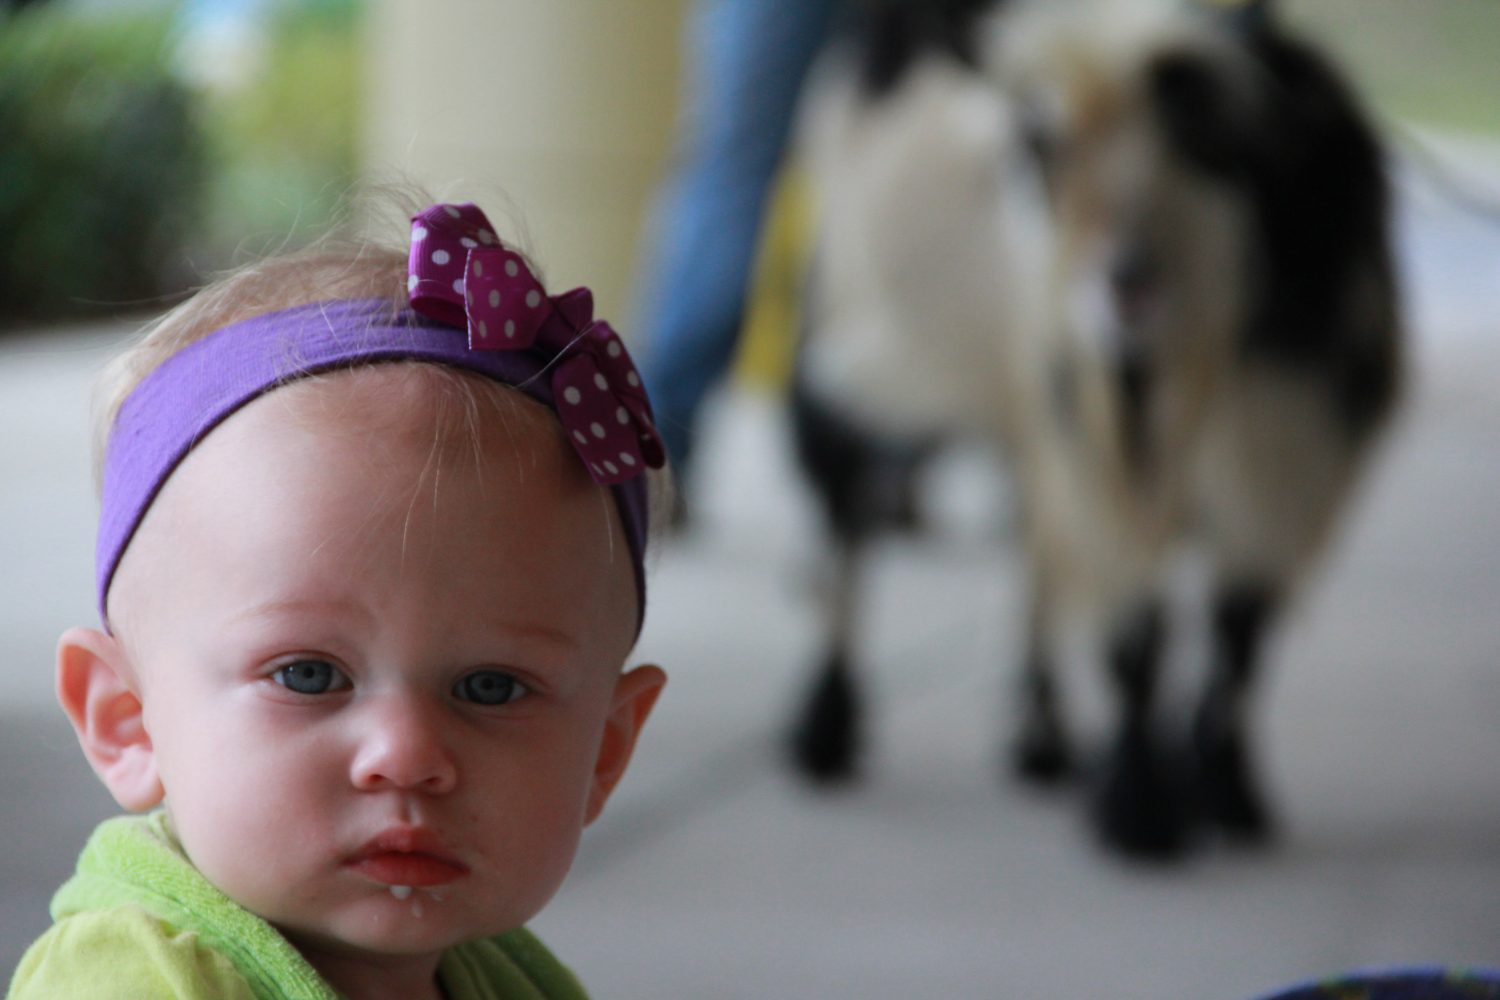 Haylee Jane attended the auction with her sister Kristin. Their mother, Emily, wasn't sure if she was going to buy Haylee Jane a goat or a pig for her first birthday.